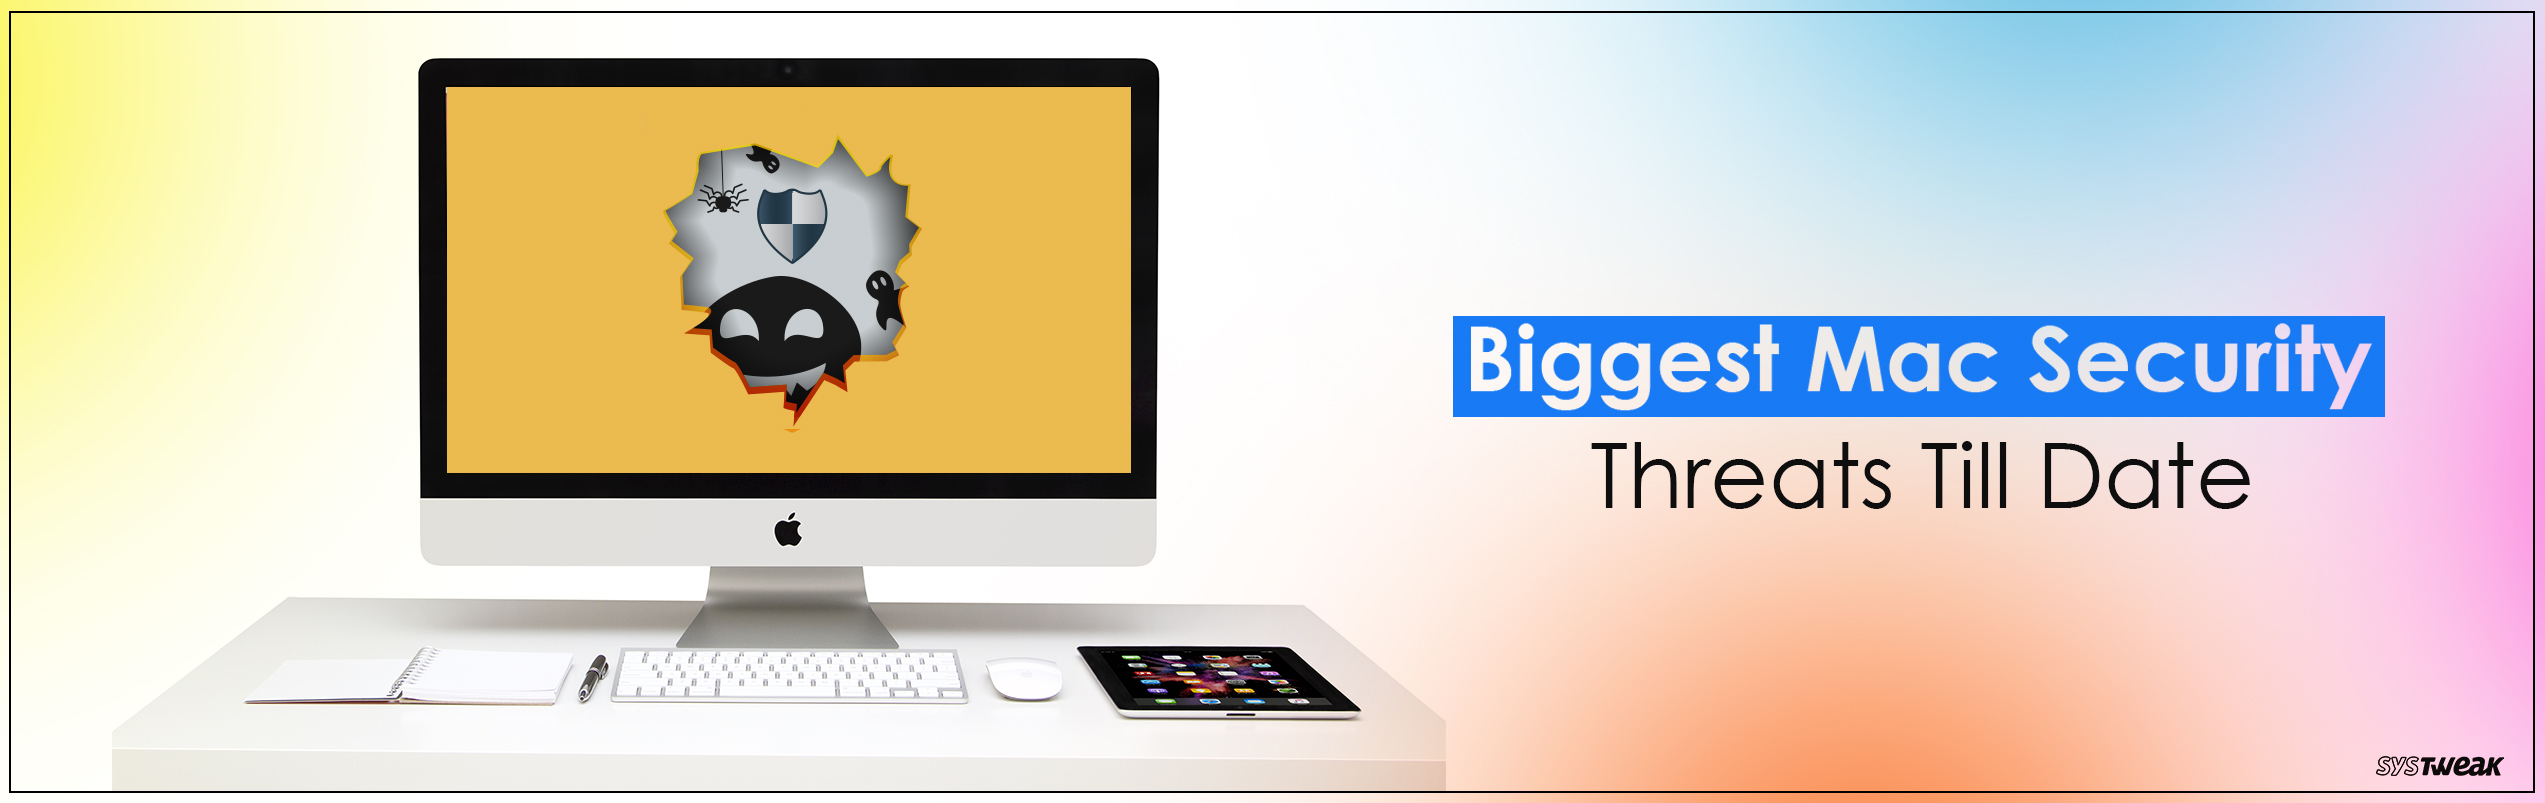 The Most Dangerous Mac Security Threats Found Till Date